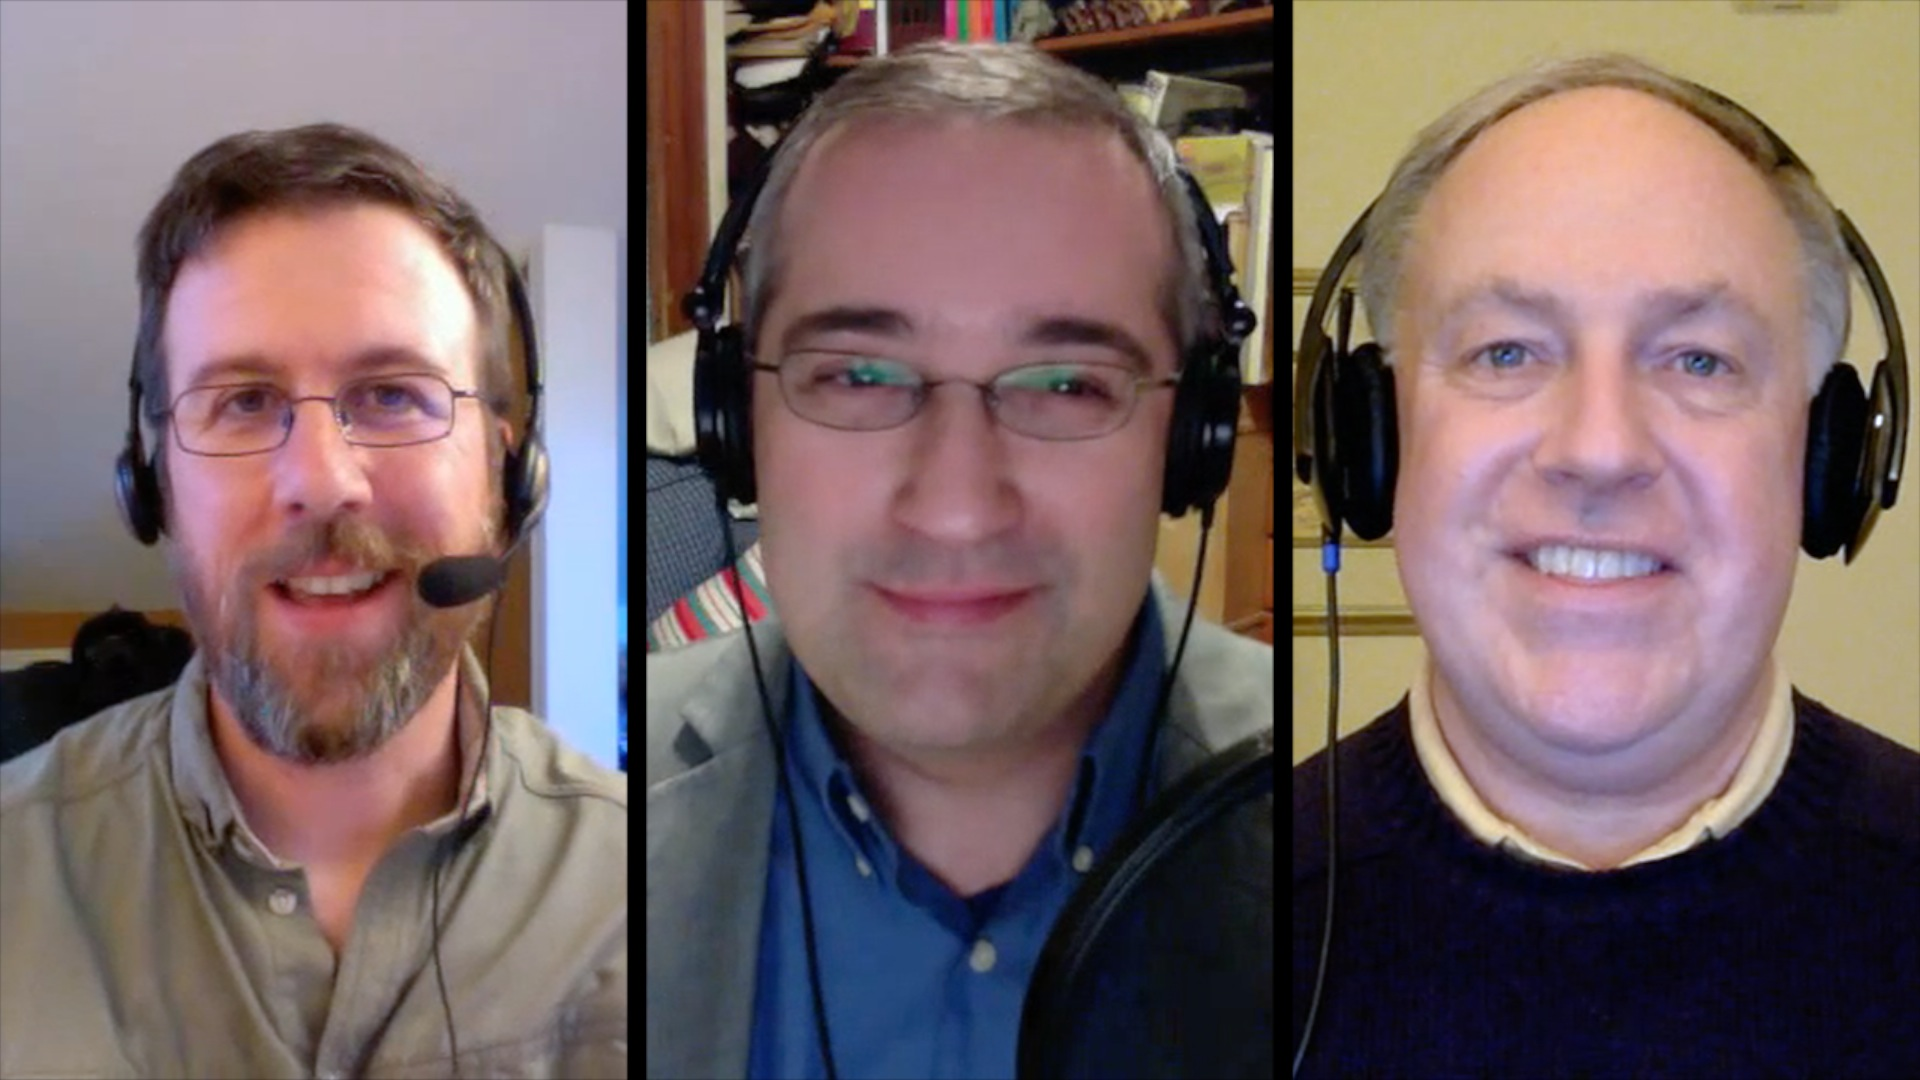 Jeff Carlson, Michael T. Rose, Chuck Joiner